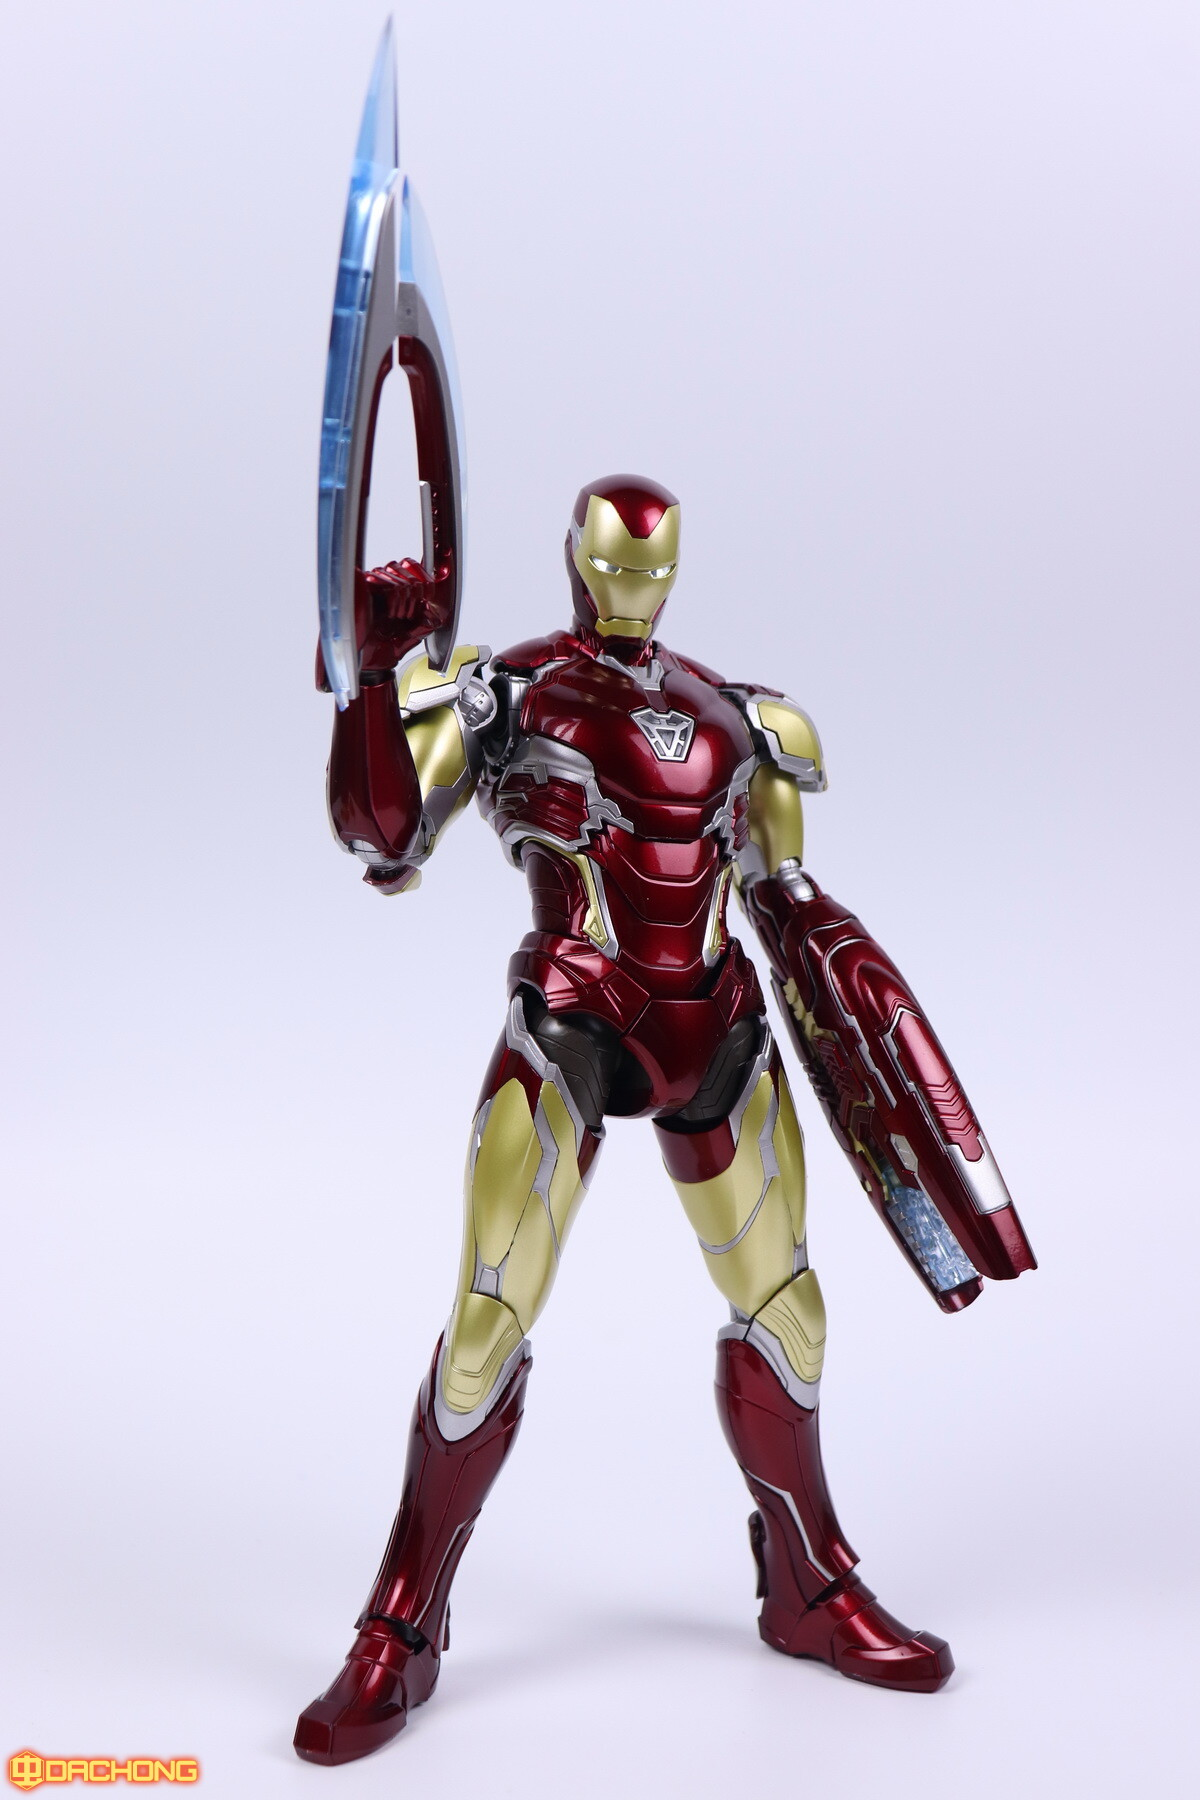 S498_2_e_model_ironman_mk85_dx_118.jpg